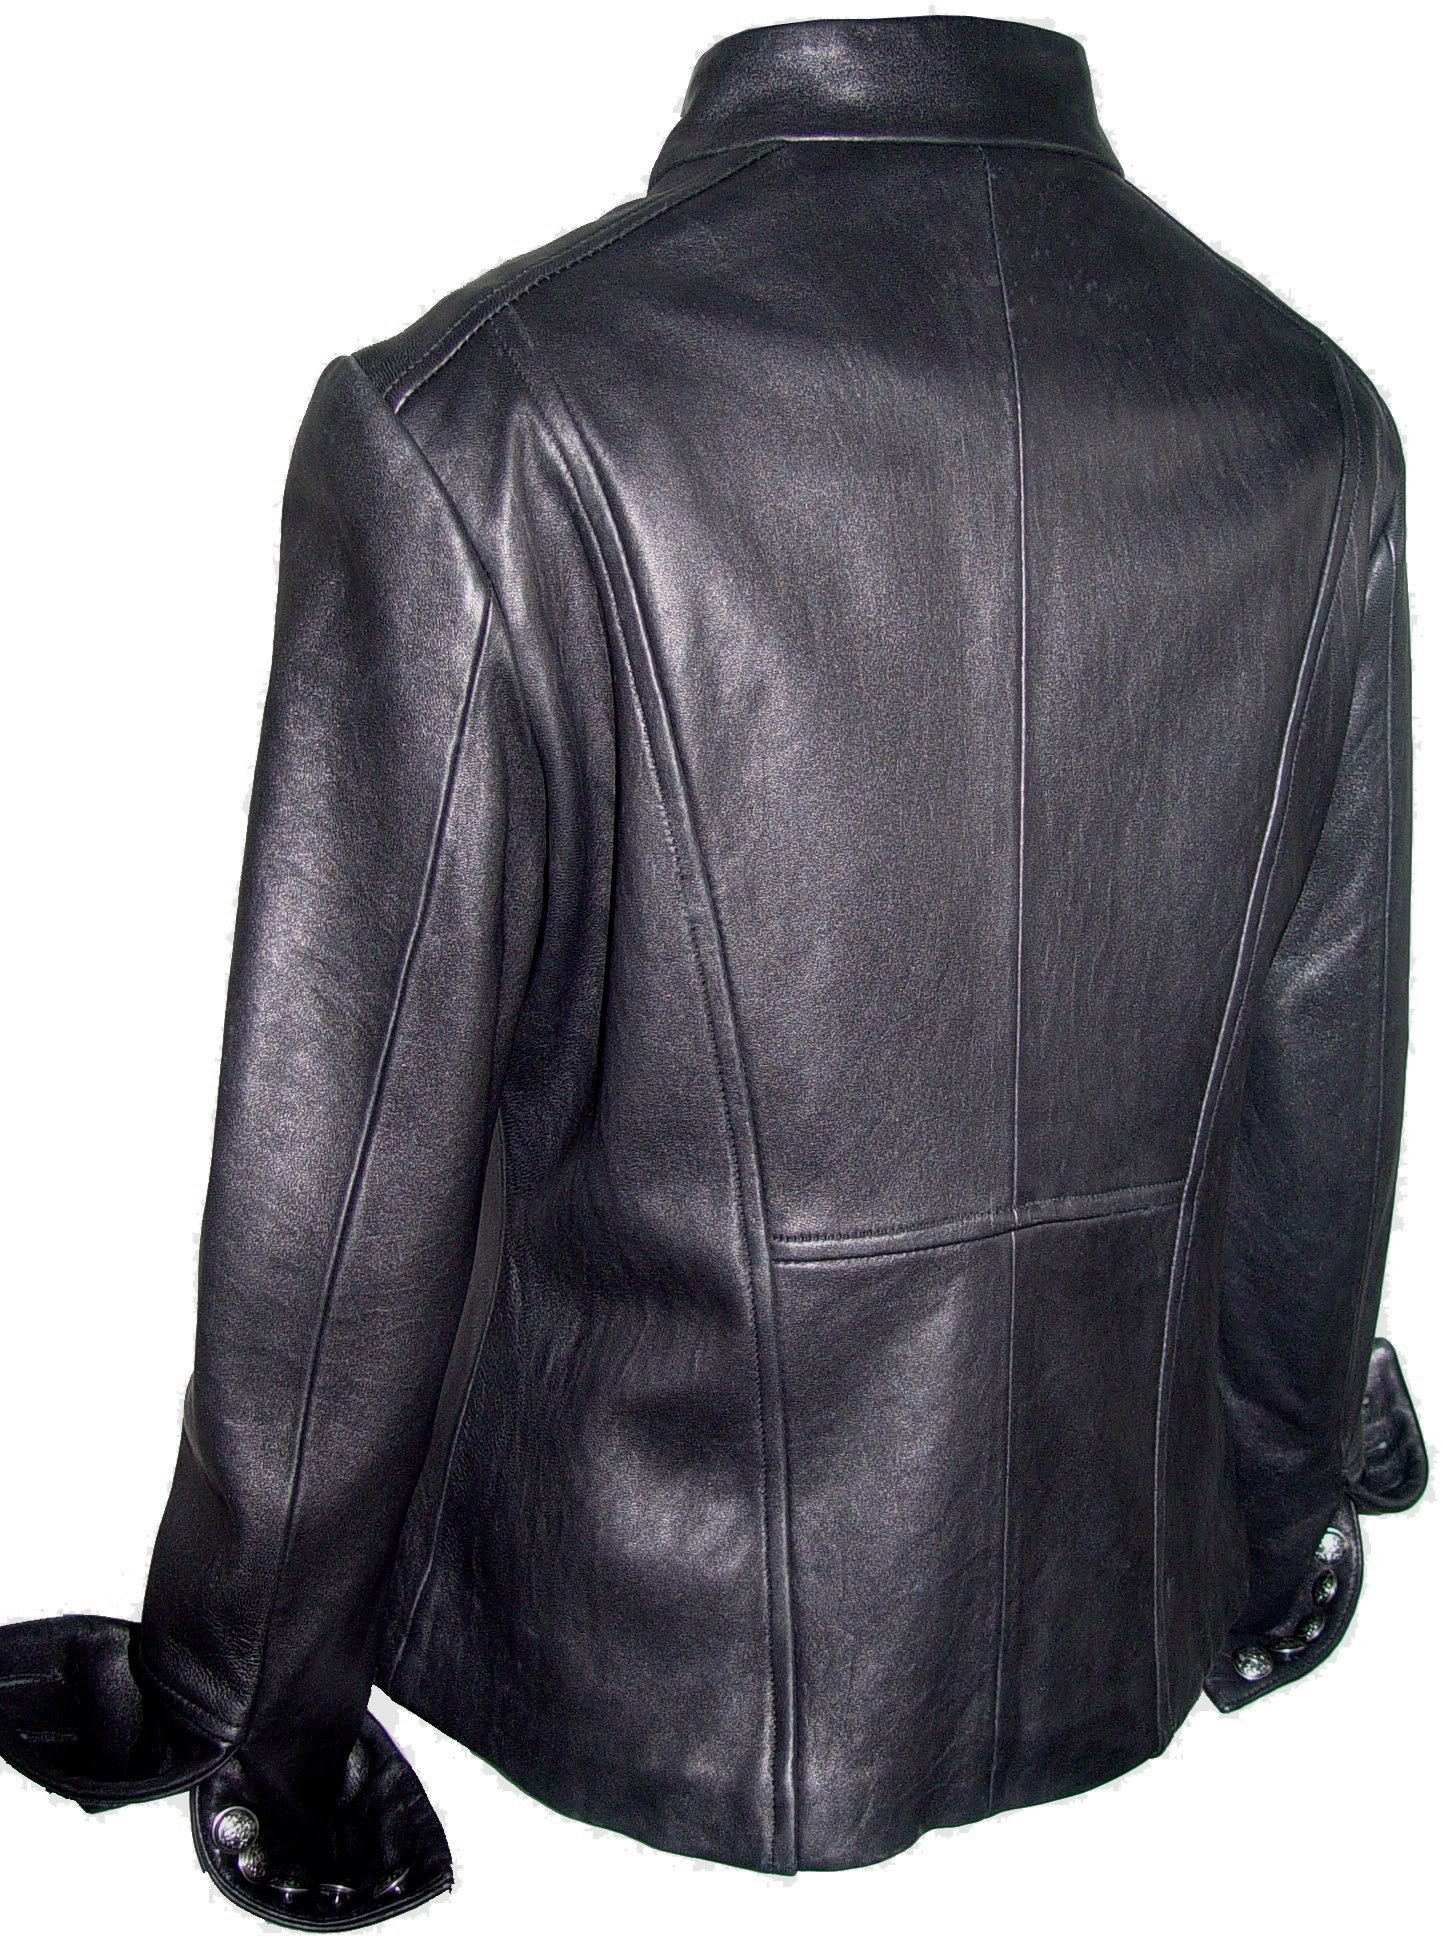 Johnny 4003 Best Cool Leather Blazer Jackets Fitted Business Clothing Soft Lamb by Johnnyblue (Image #3)